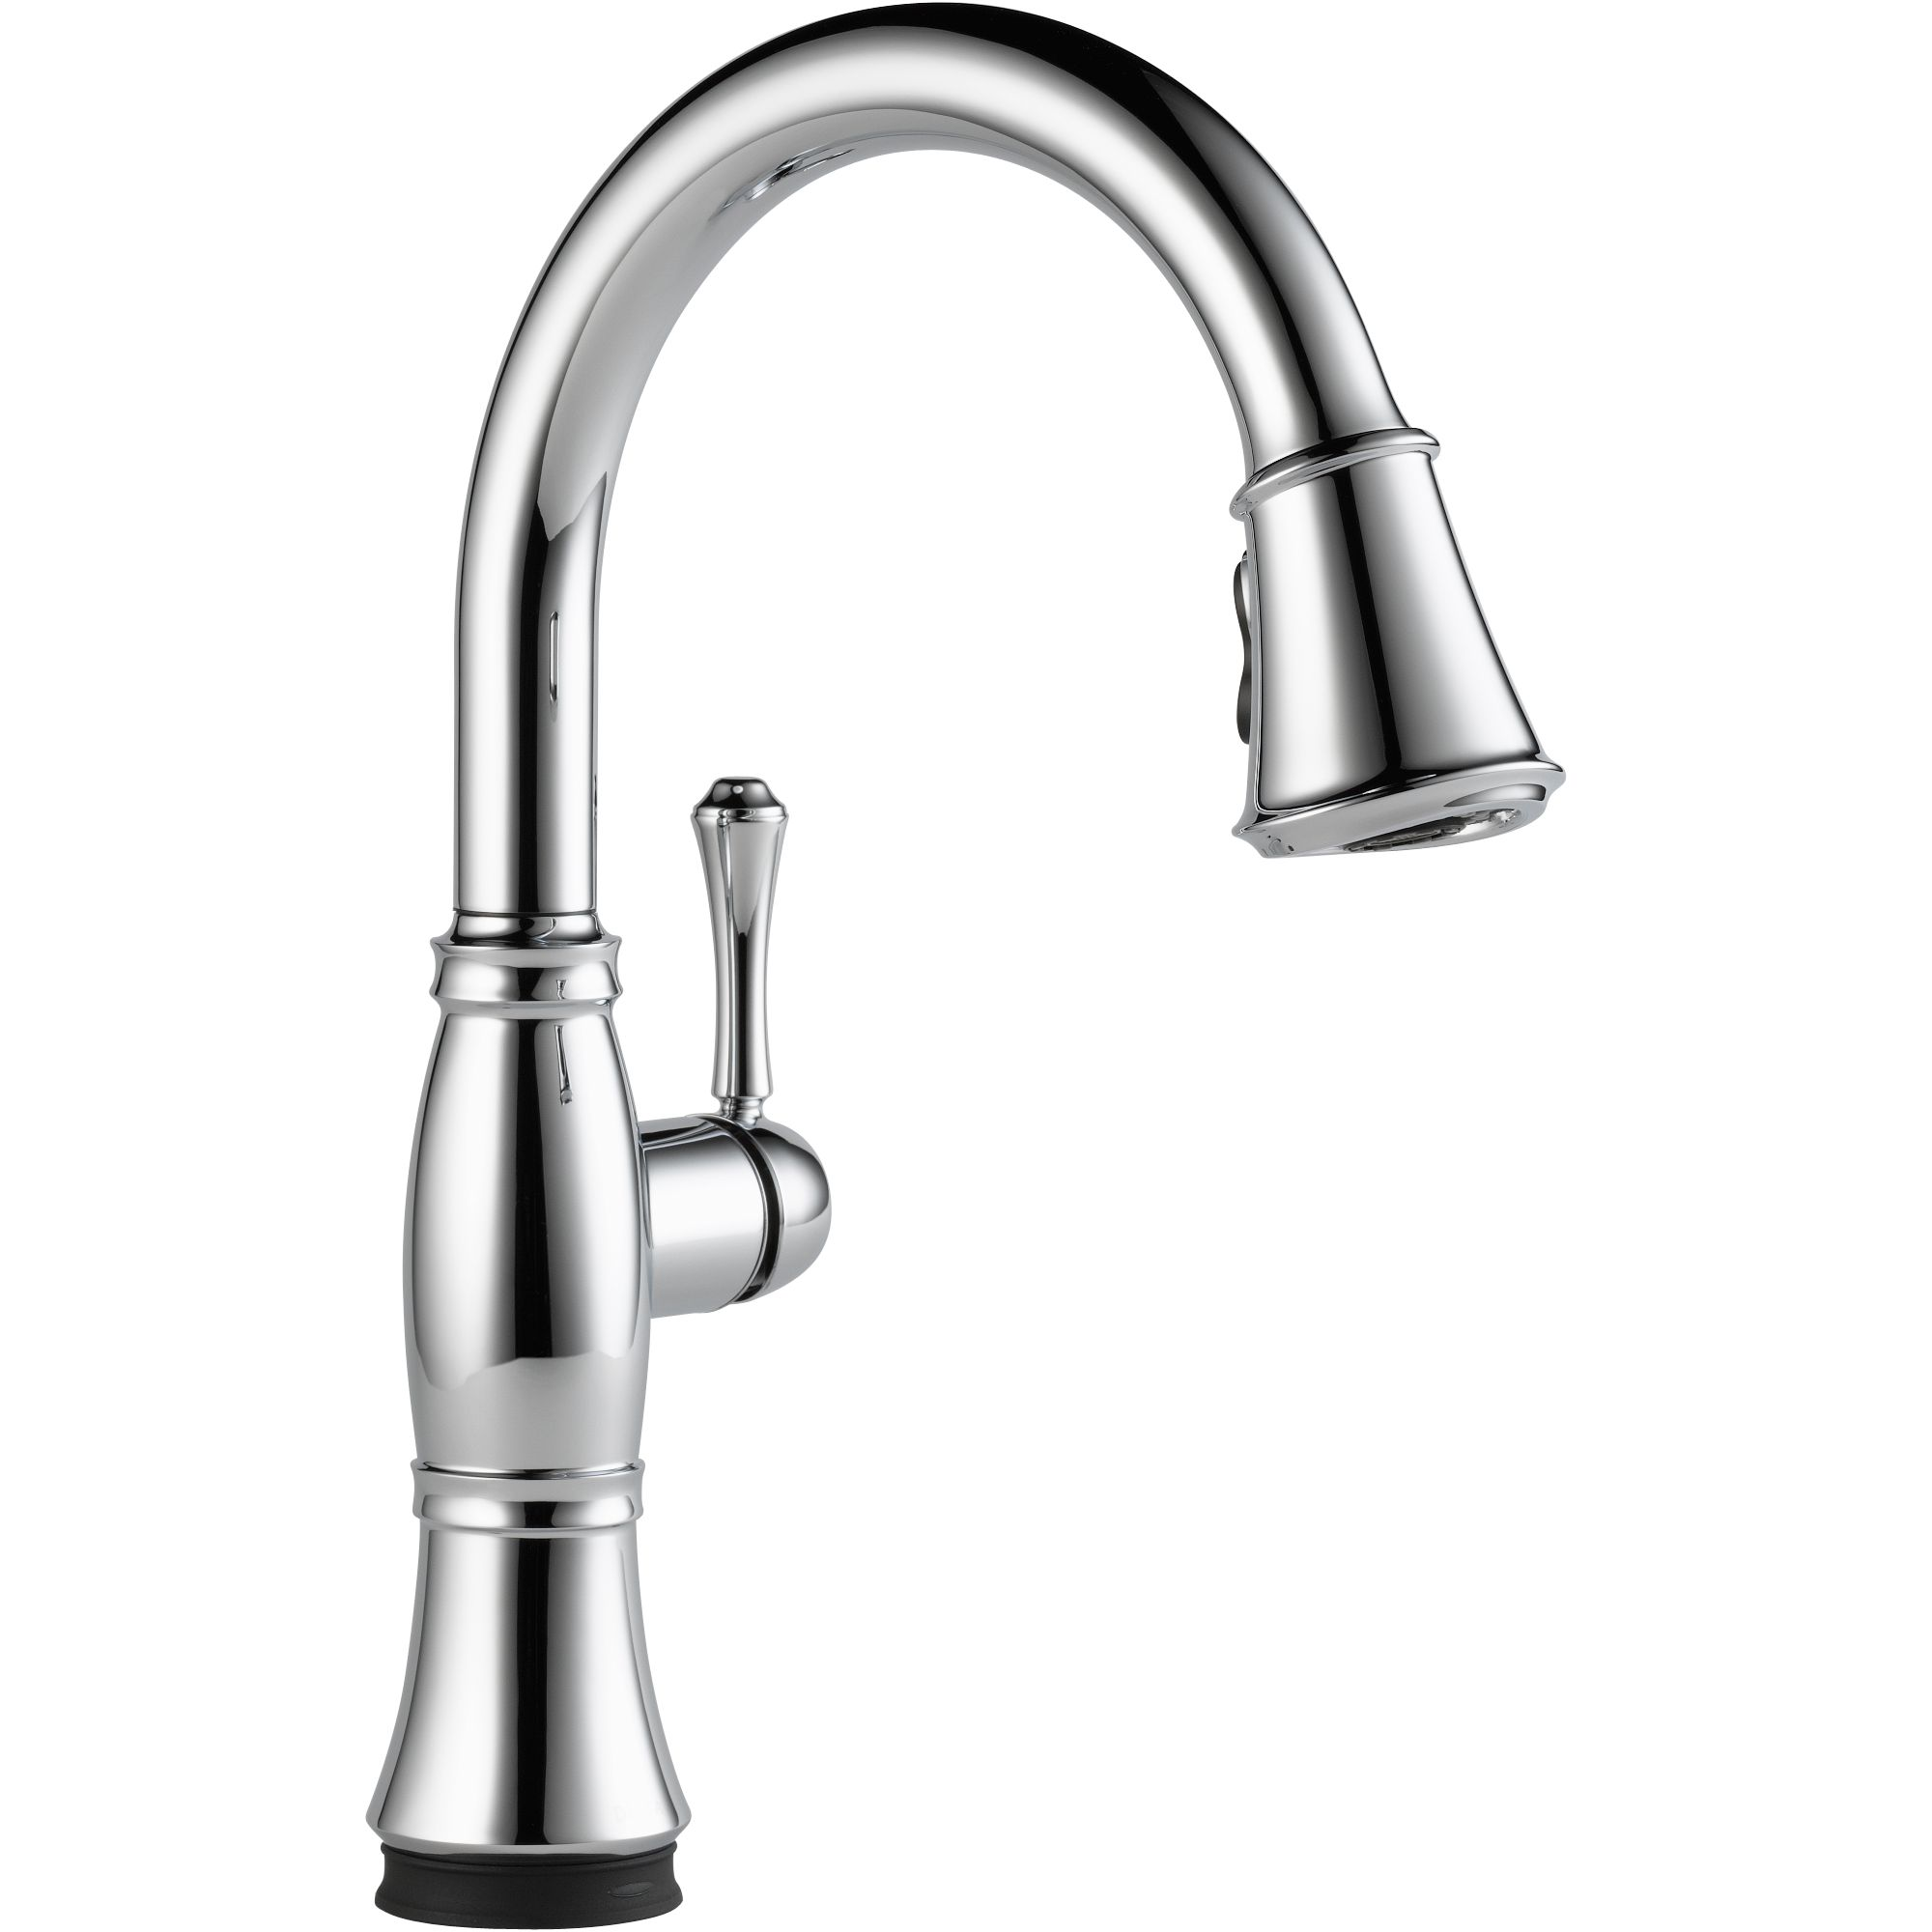 The Cassidy™ Single Handle Pull-Down Kitchen Faucet with